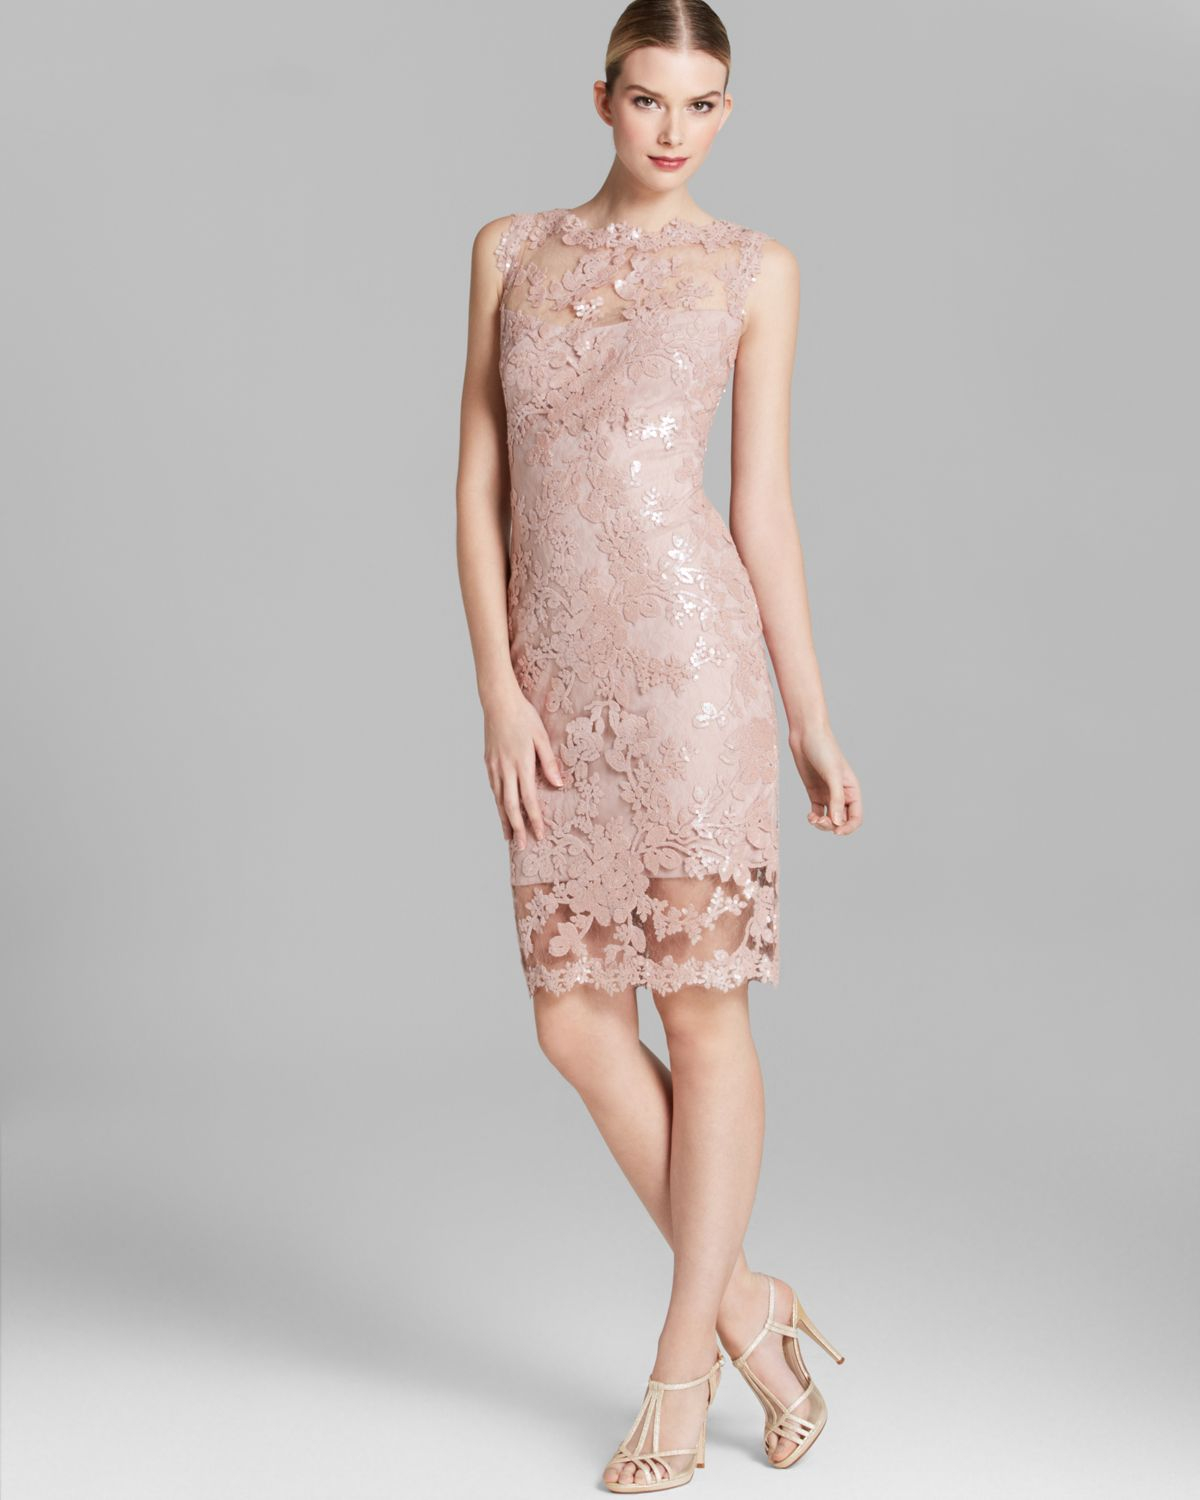 Tadashi Illusion Lace Gown _Other dresses_dressesss